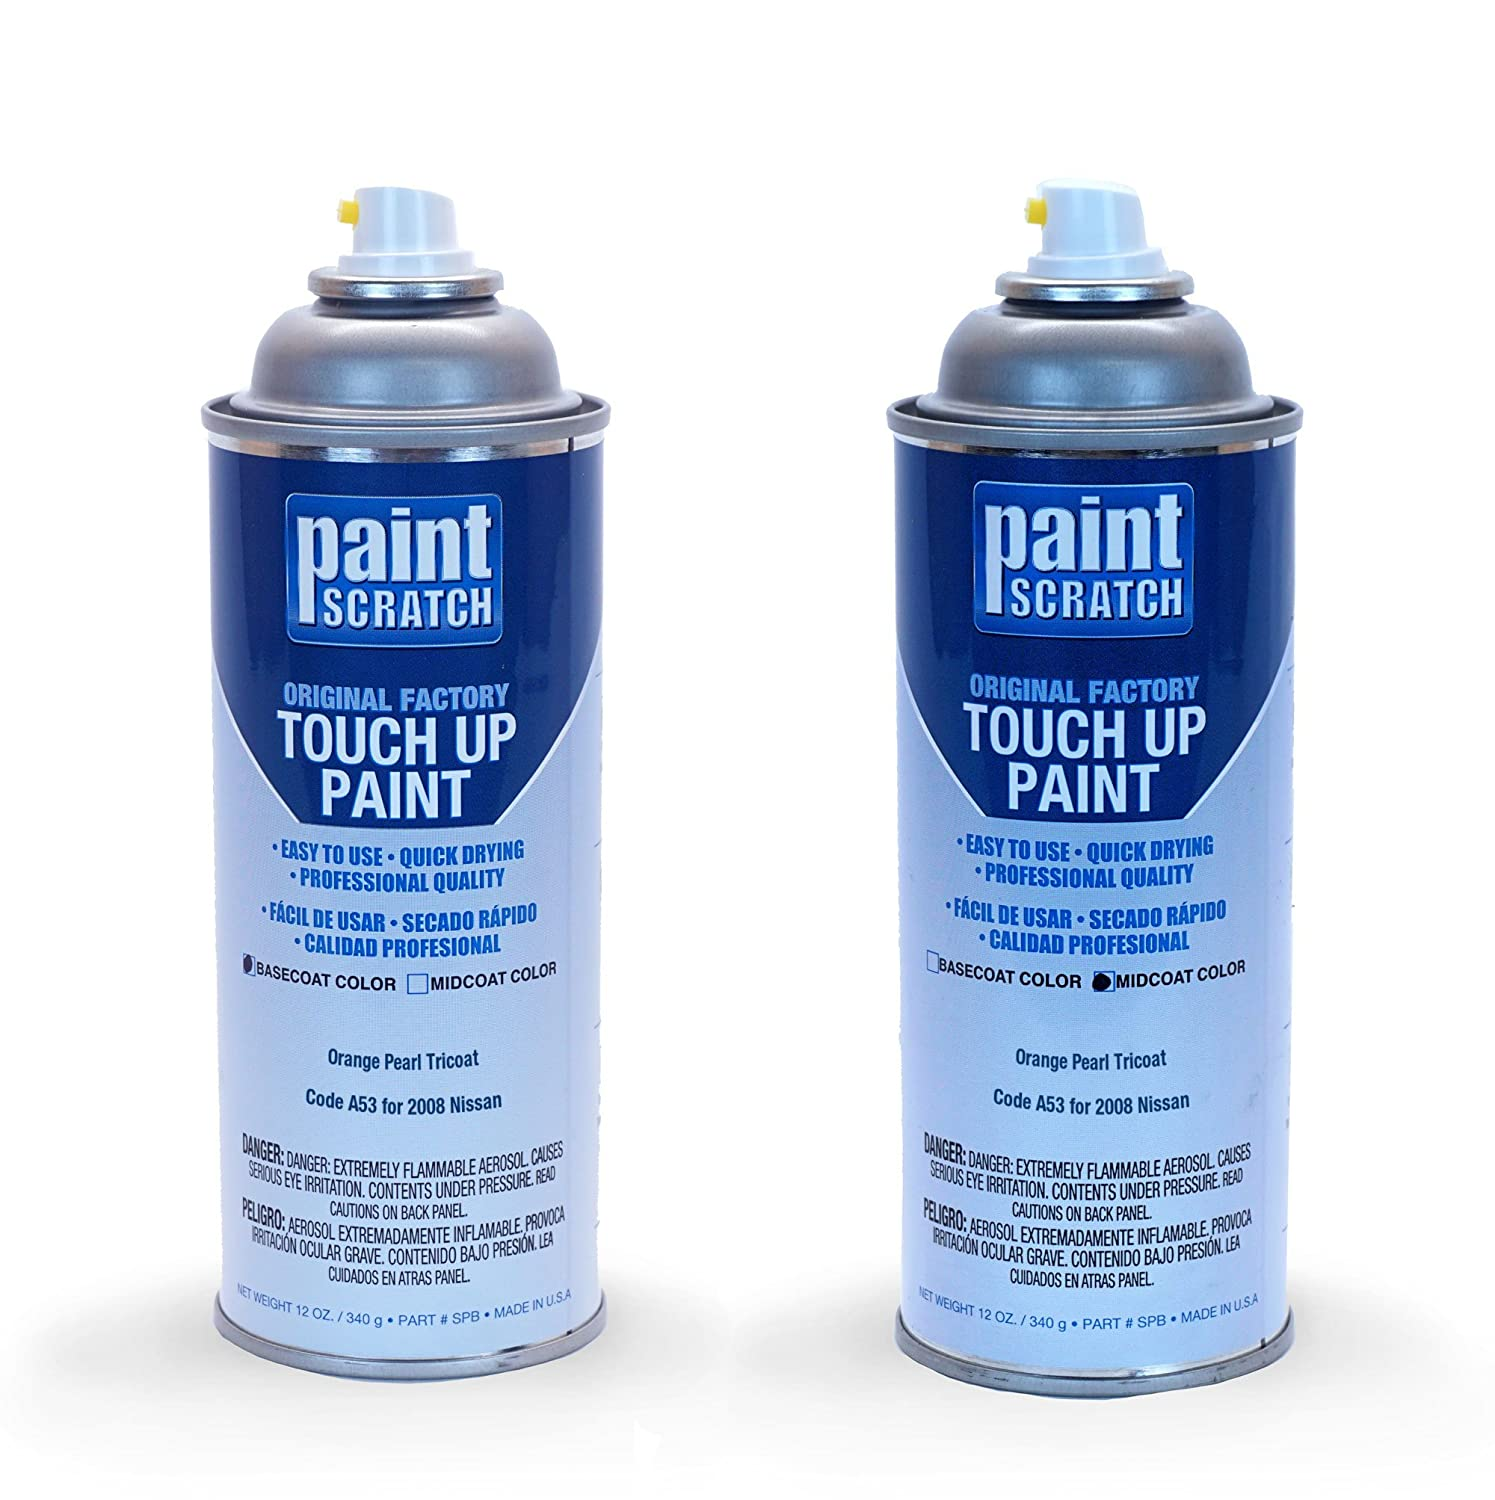 Amazon.com: PAINTSCRATCH Orange Pearl Tricoat A53 for 2008 Nissan 350Z - Touch Up Paint Spray Can Kit - Original Factory OEM Automotive Paint - Color Match ...